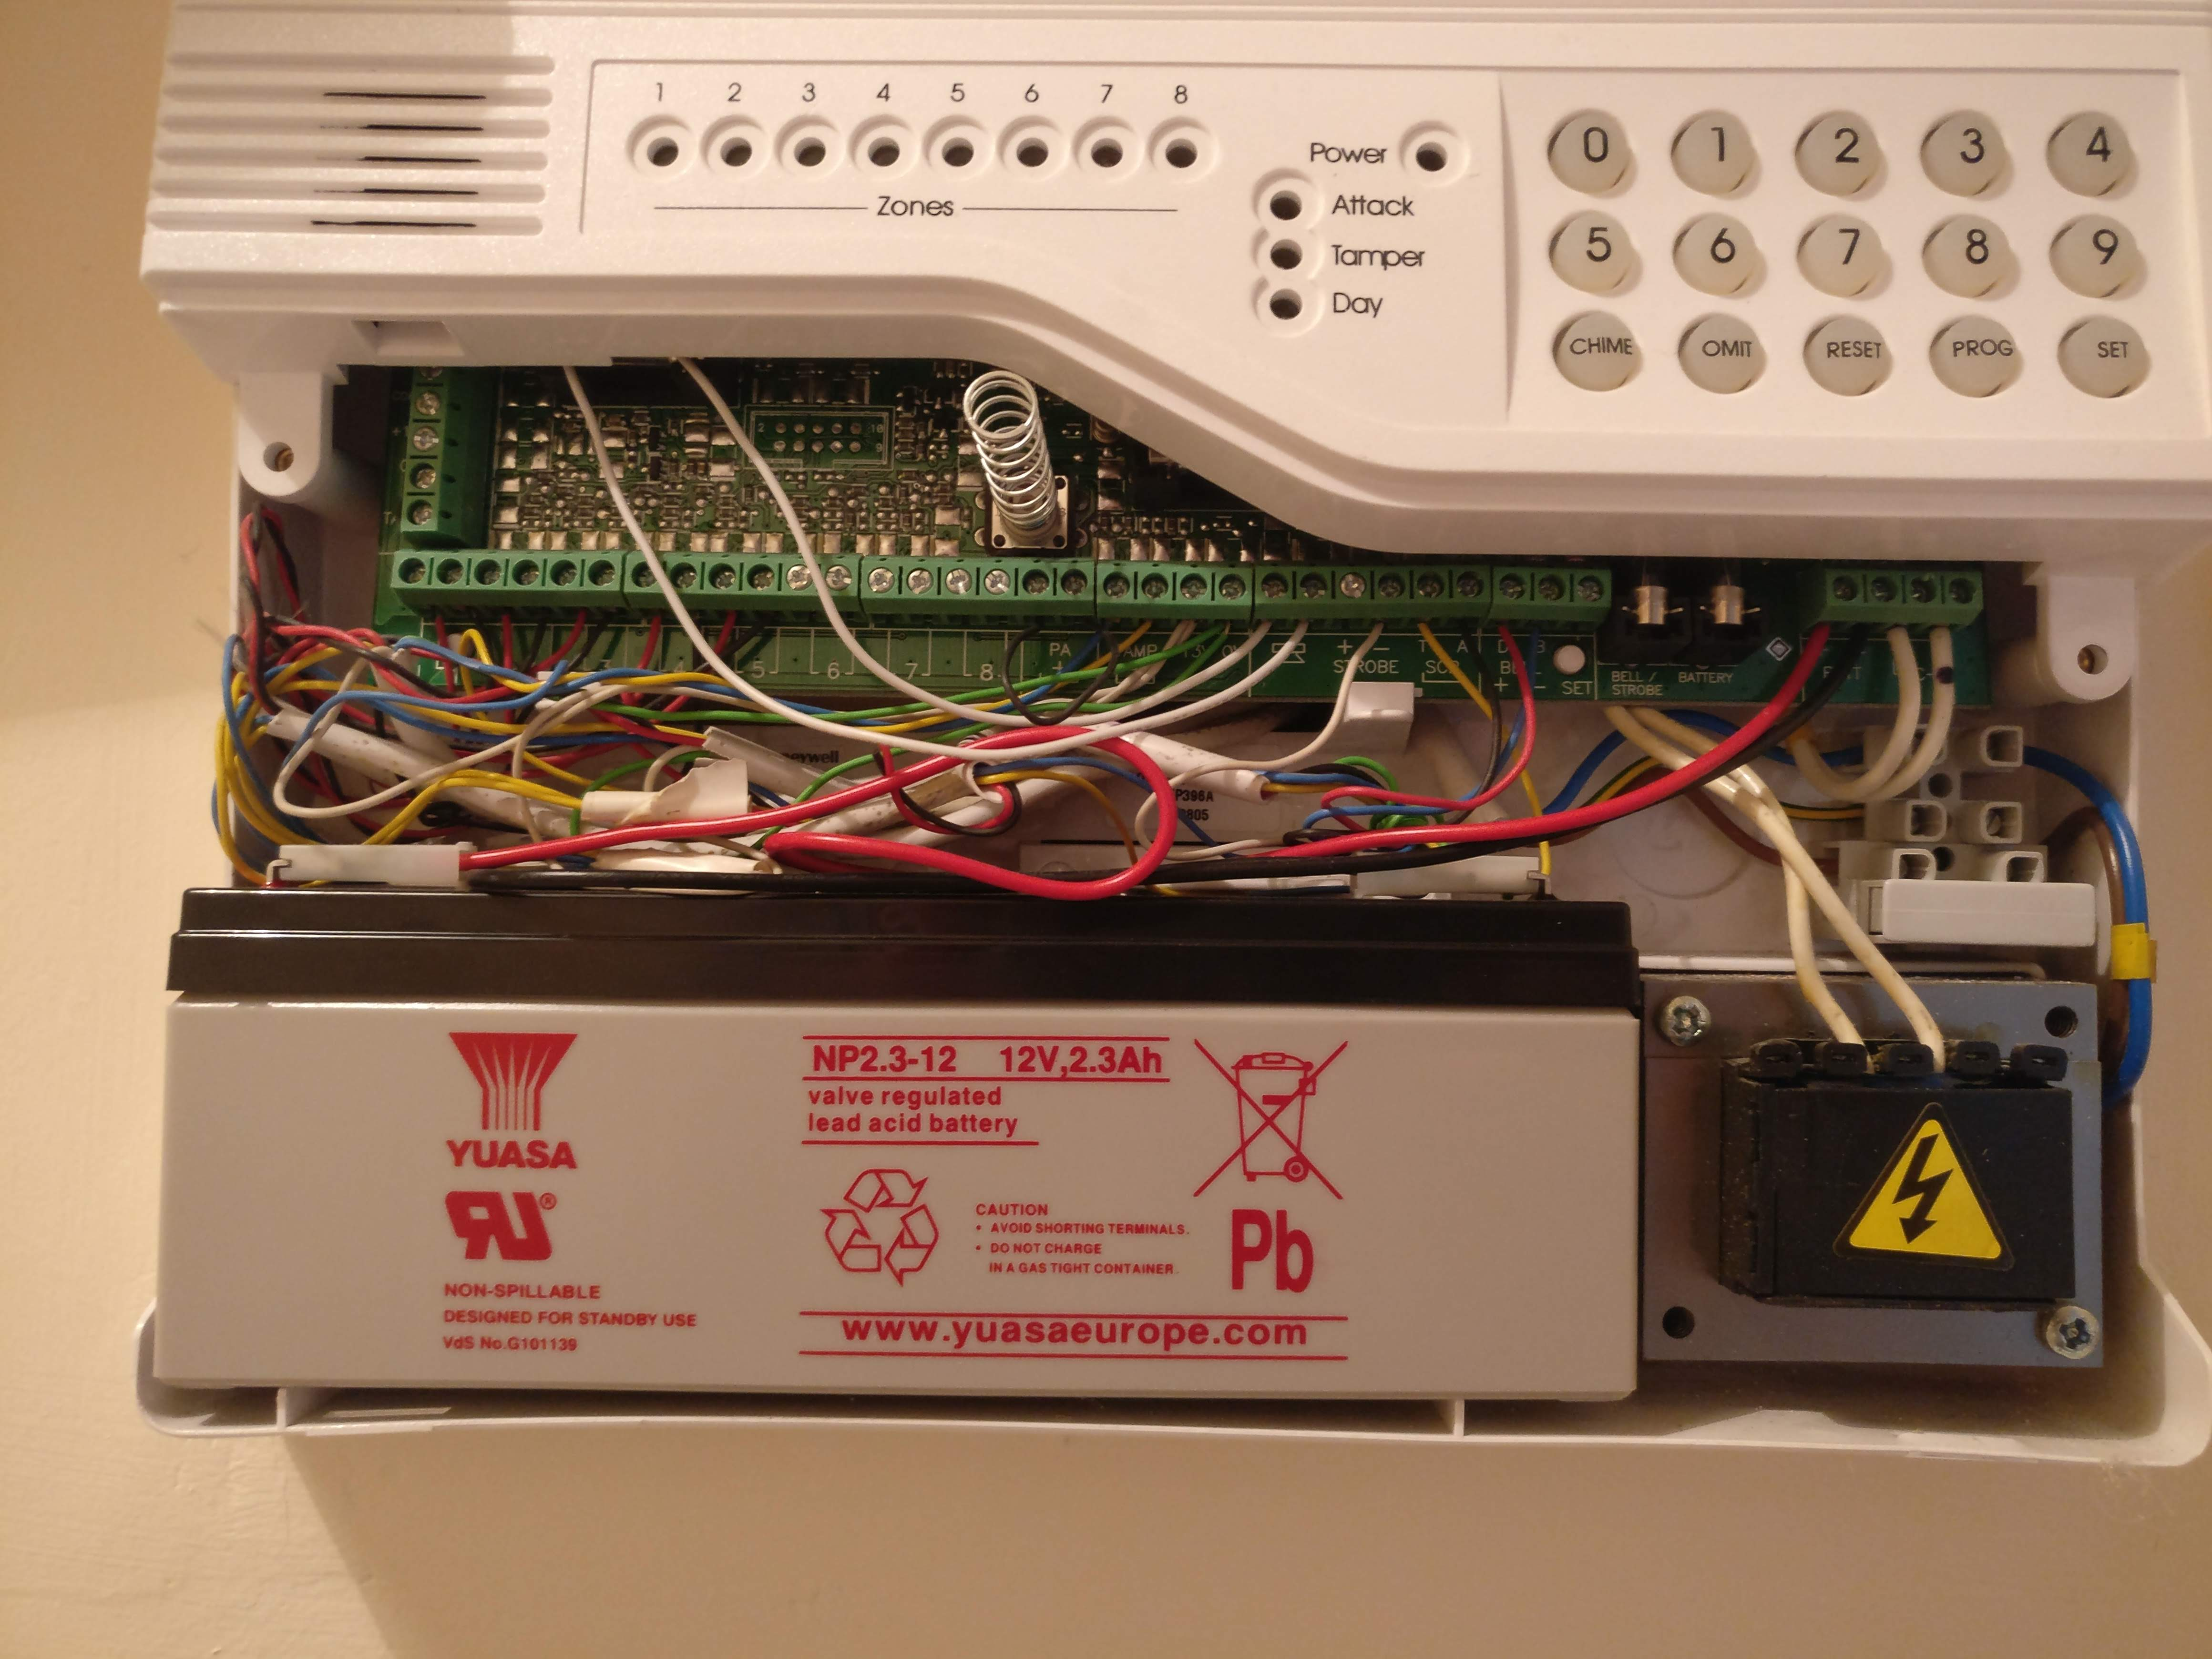 Accenta / Optima alarm control box with bottom section removed